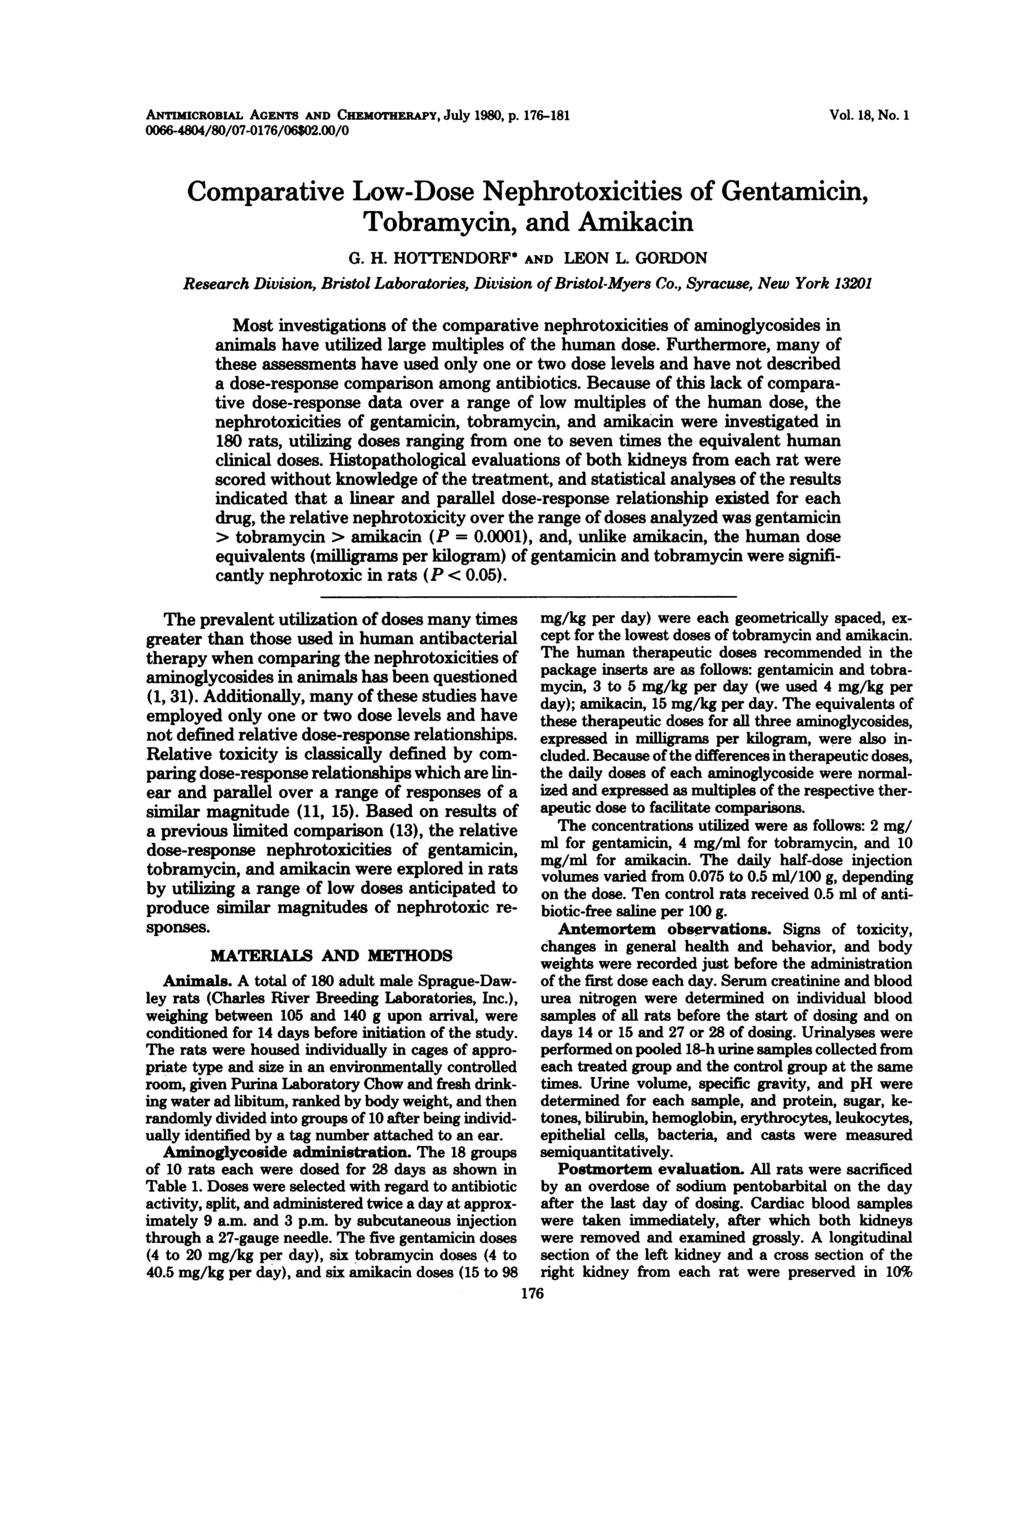 ANTIMICROBIAL AGENTS AND CHEMOTHERAPY, July 1980, p. 176-181 0066-4804/80/07-0176/06$02.00/0 Vol. 18, No. 1 Comparative Low-Dose Nephrotoxicities of Gentamicin, Tobramycin, and Amikacin G. H.